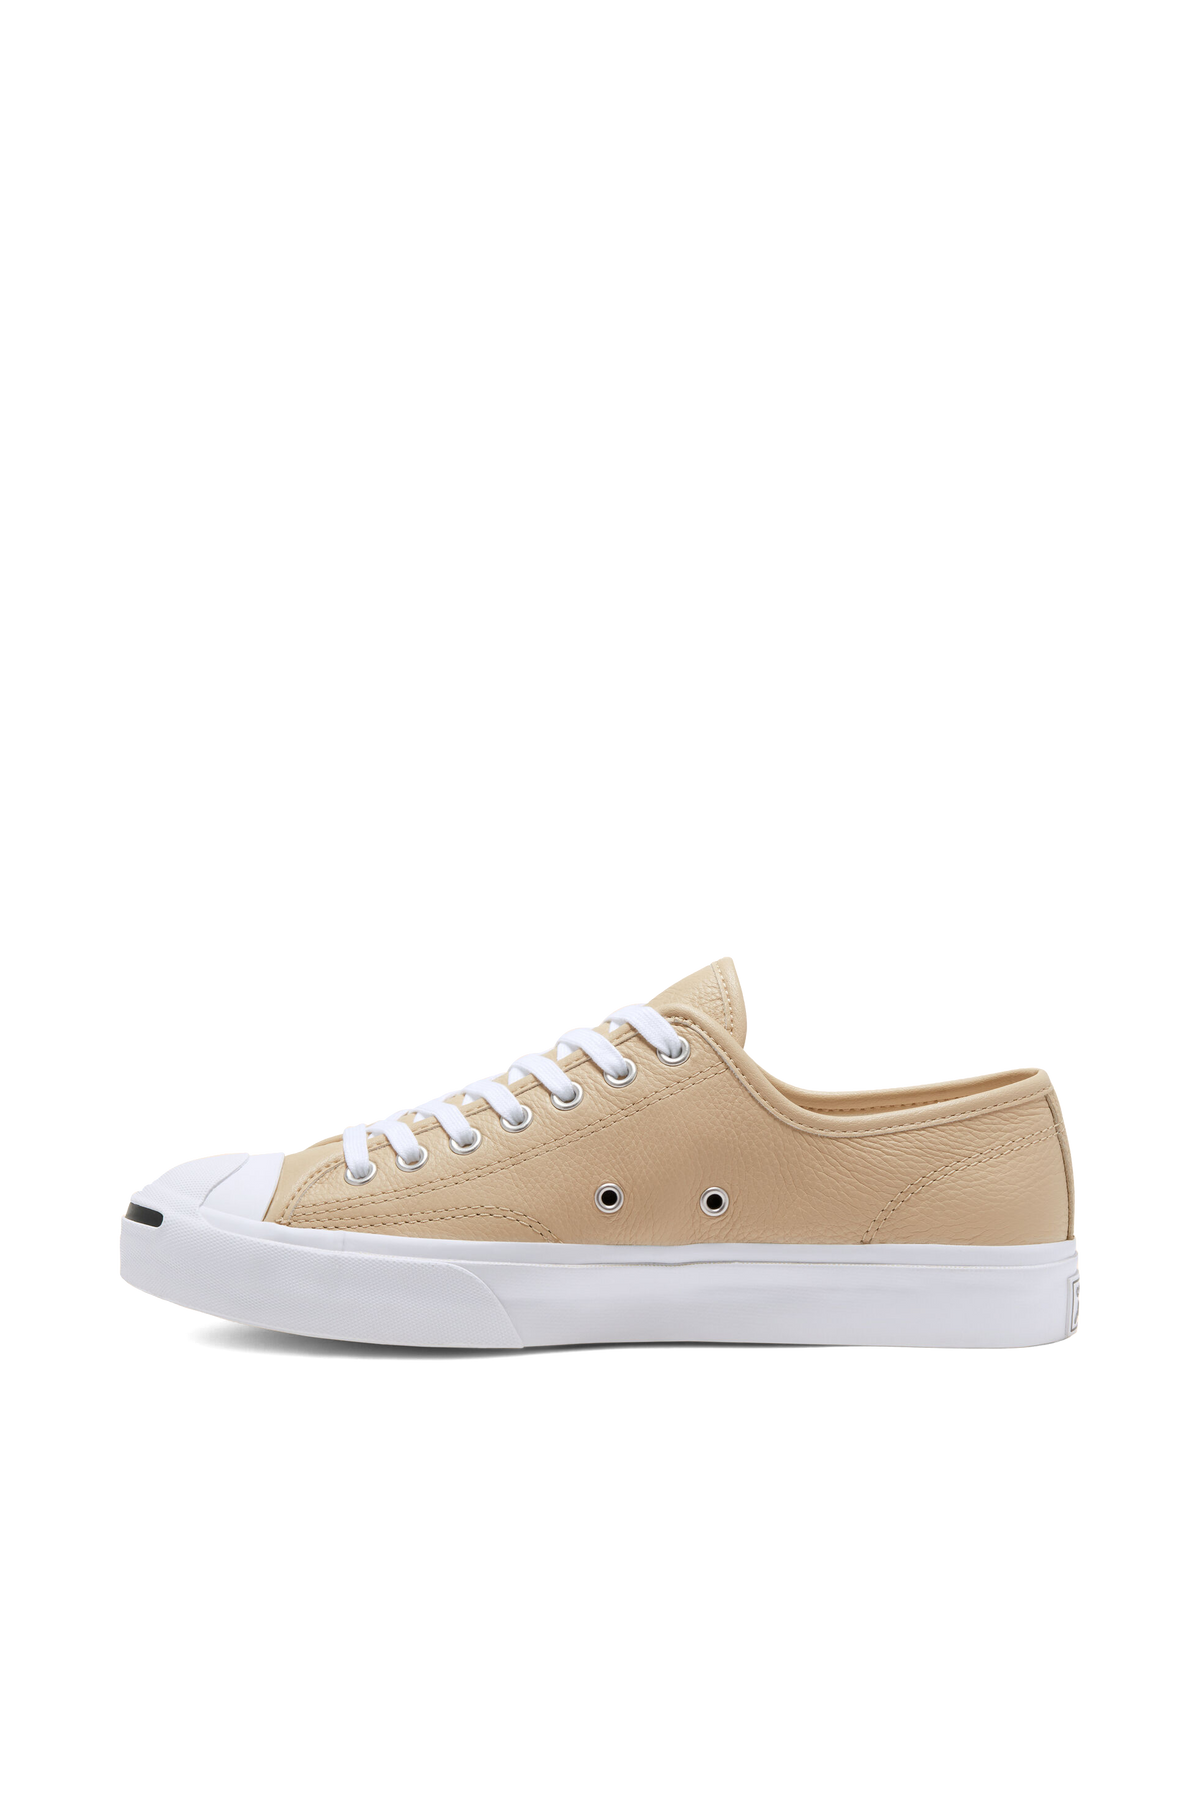 Jack Purcell Leather - Desert Ore